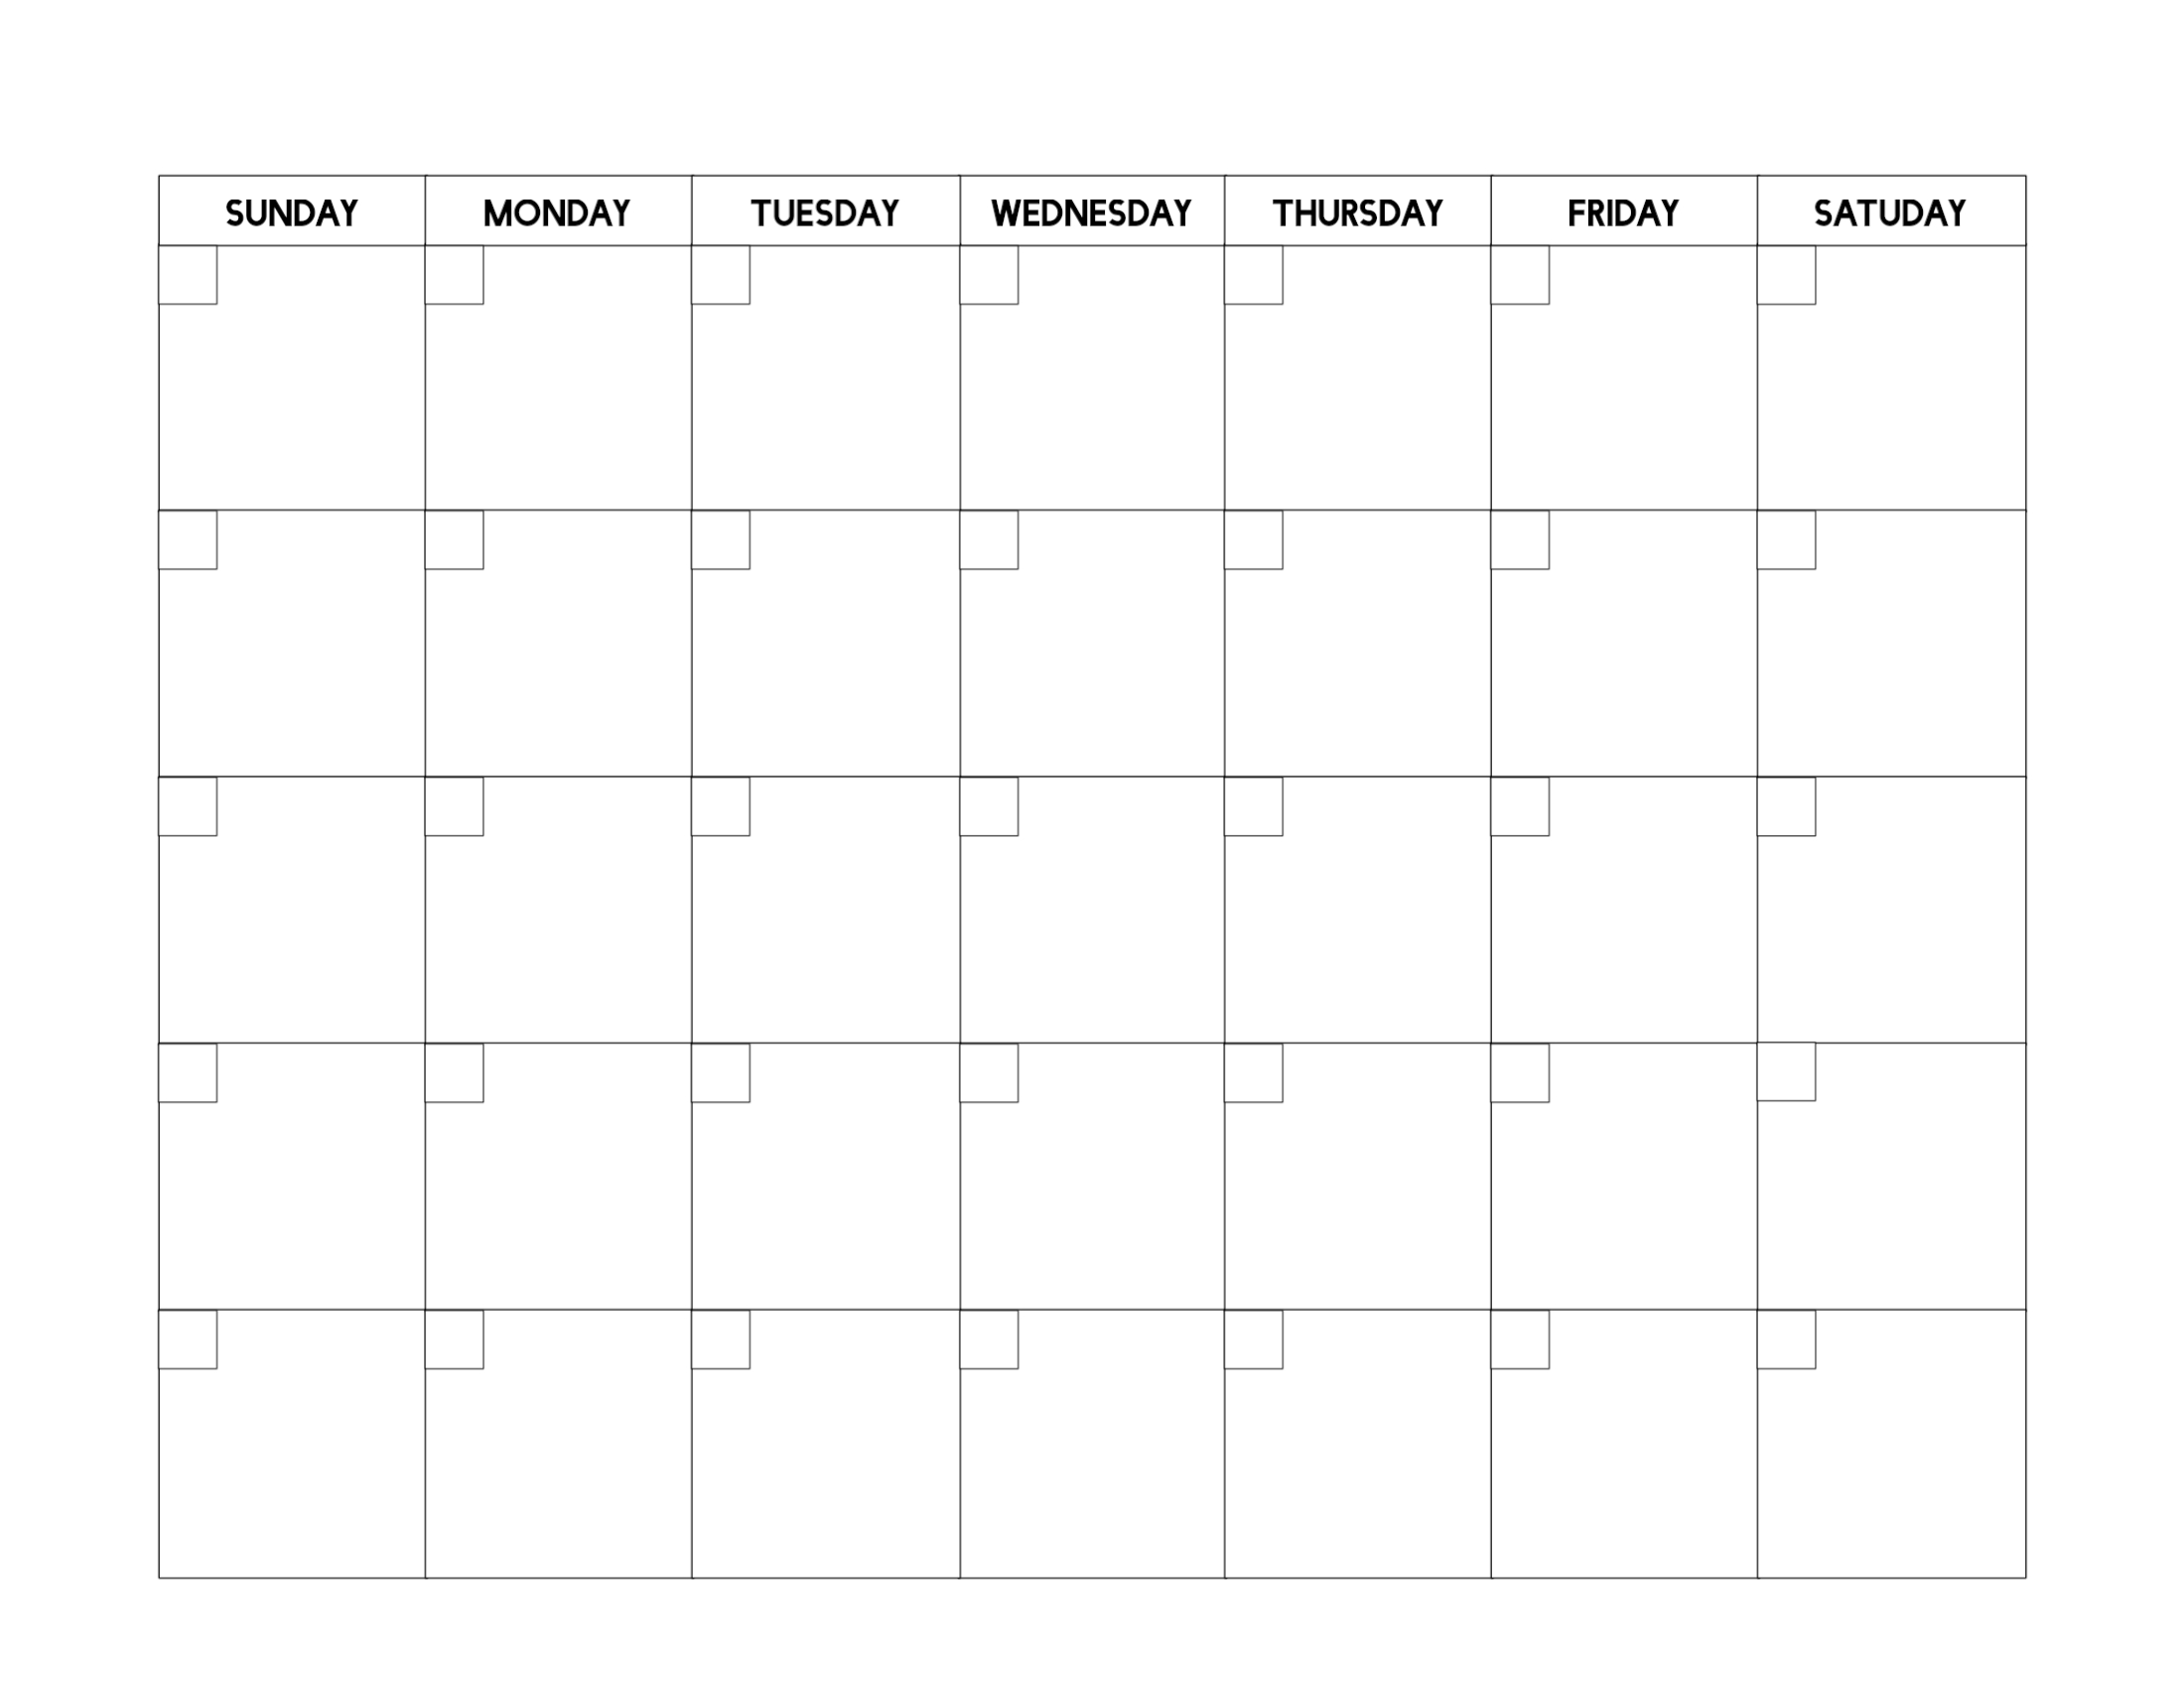 Free Printable Blank Calendar Template - Paper Trail Design-Calendar Blank With Numbers And Printable